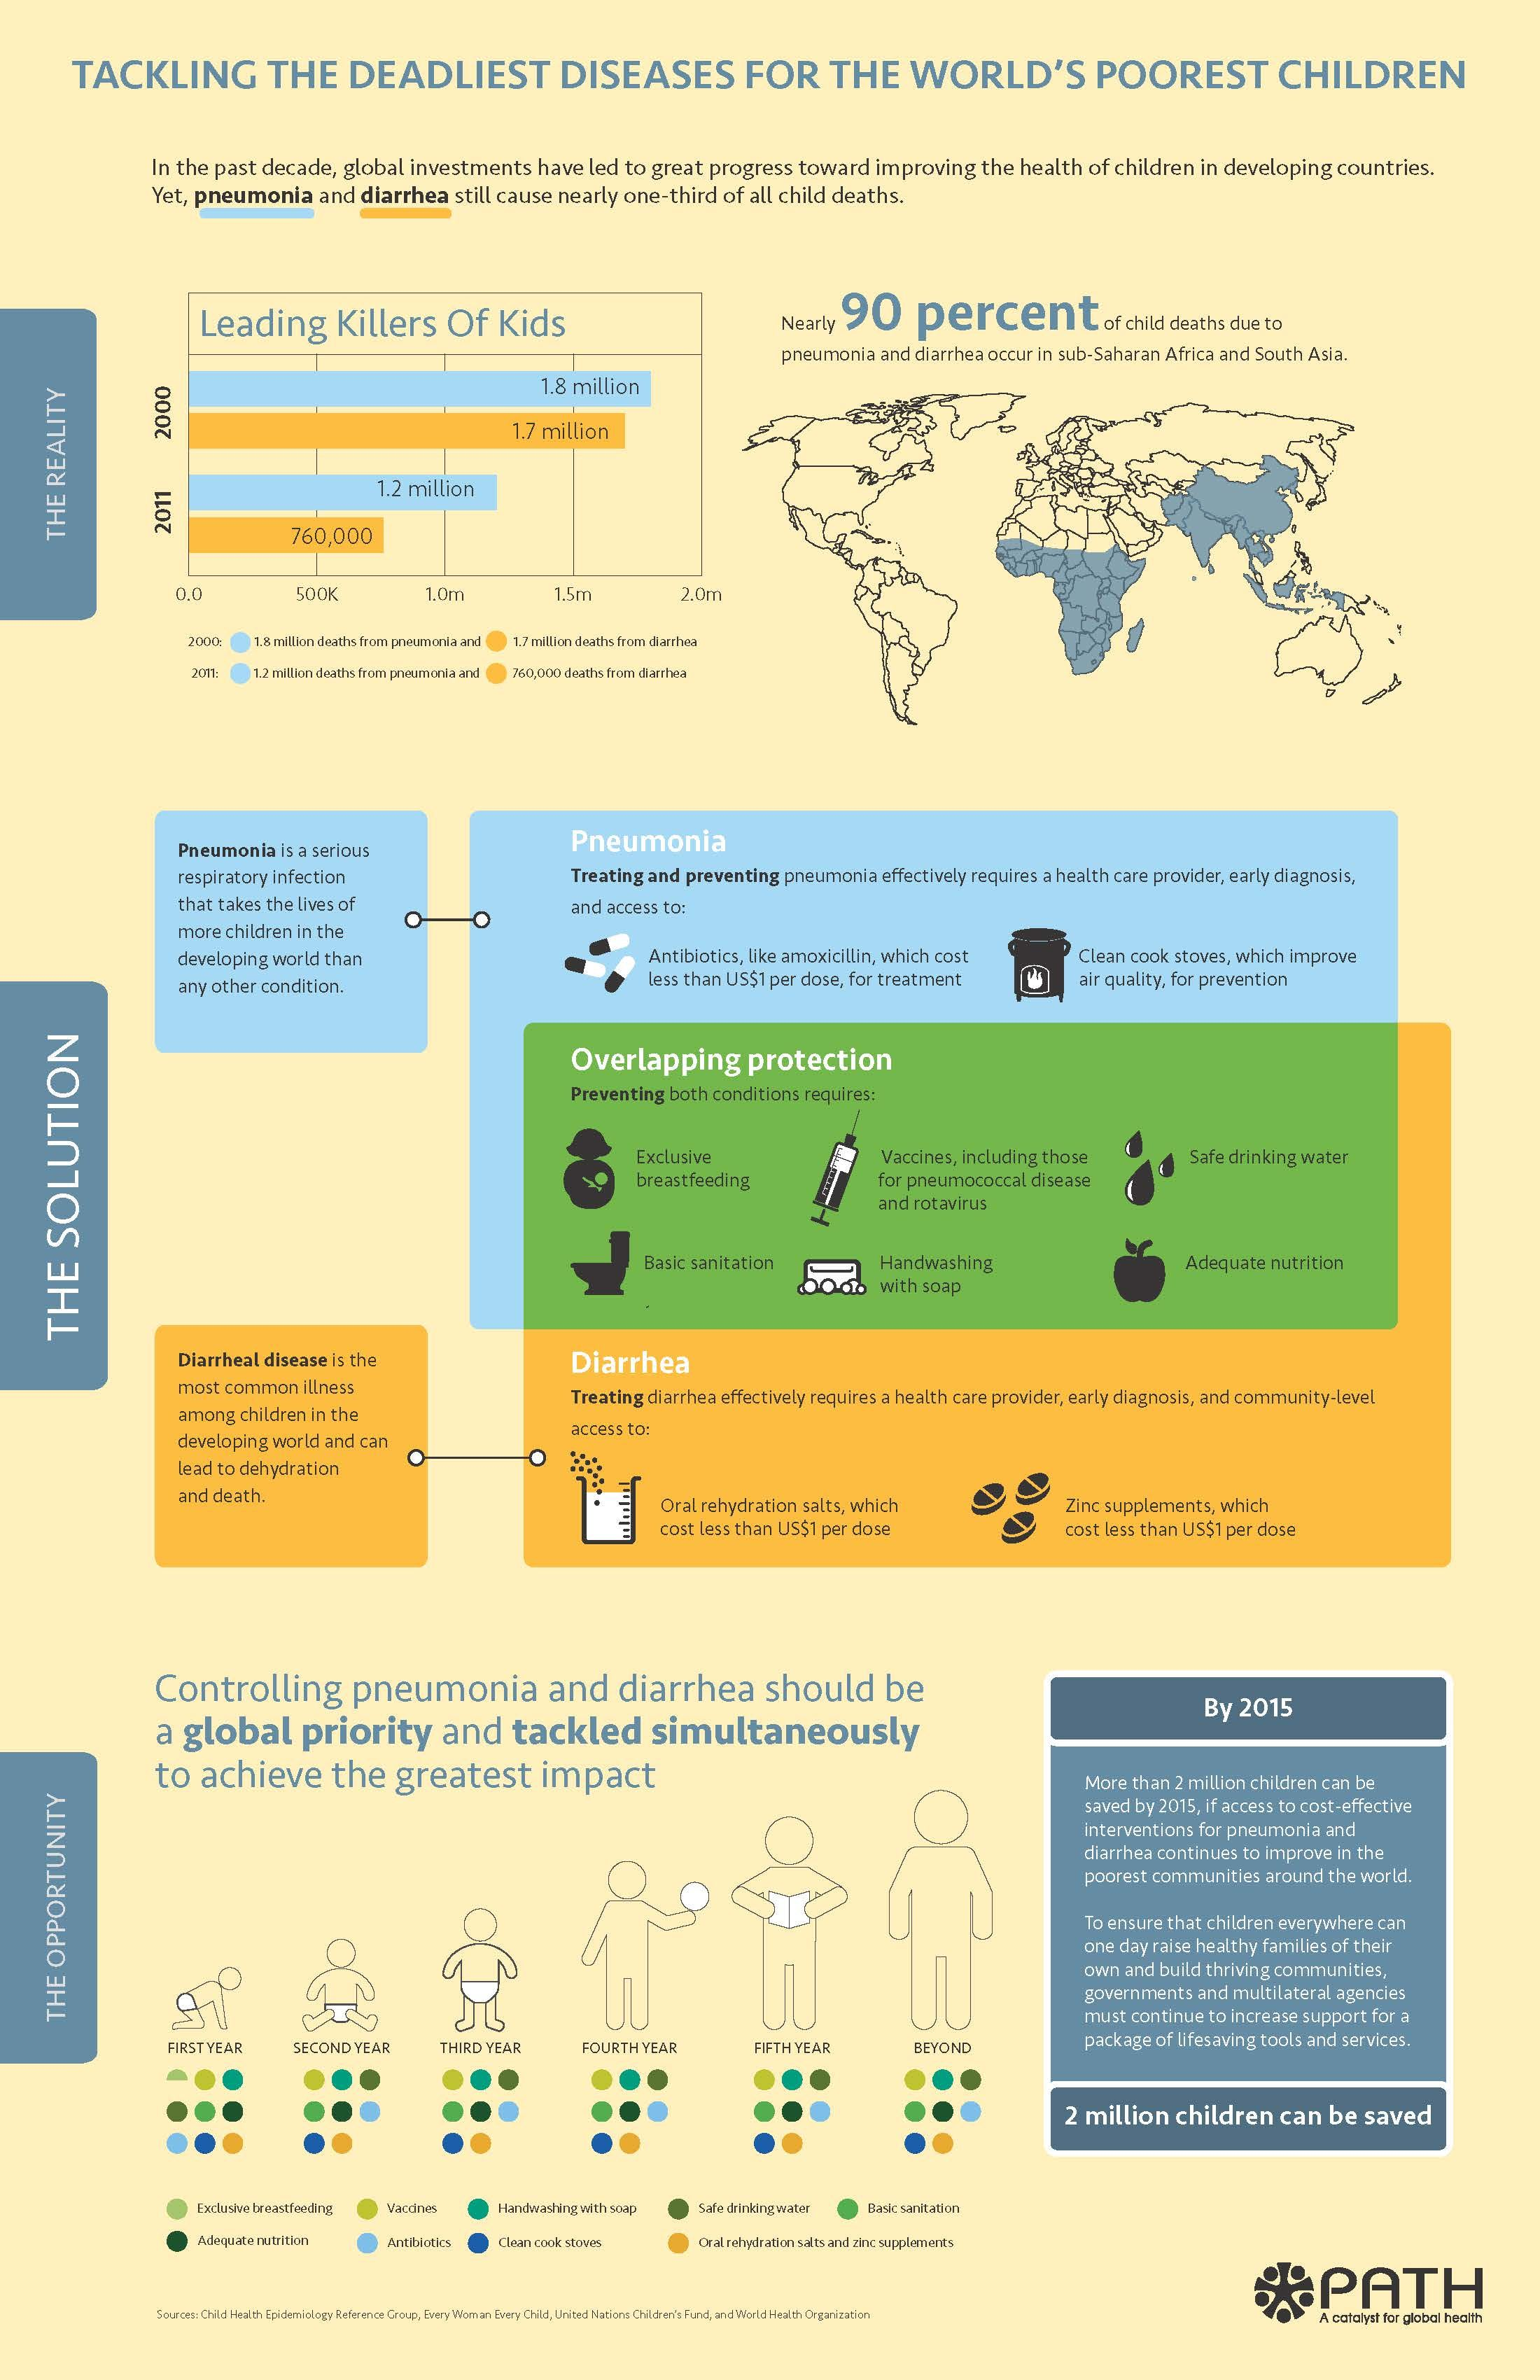 INFOGRAPHIC: Controlling pneumonia and diarrhea simultaneously to achieve the greatest impact.